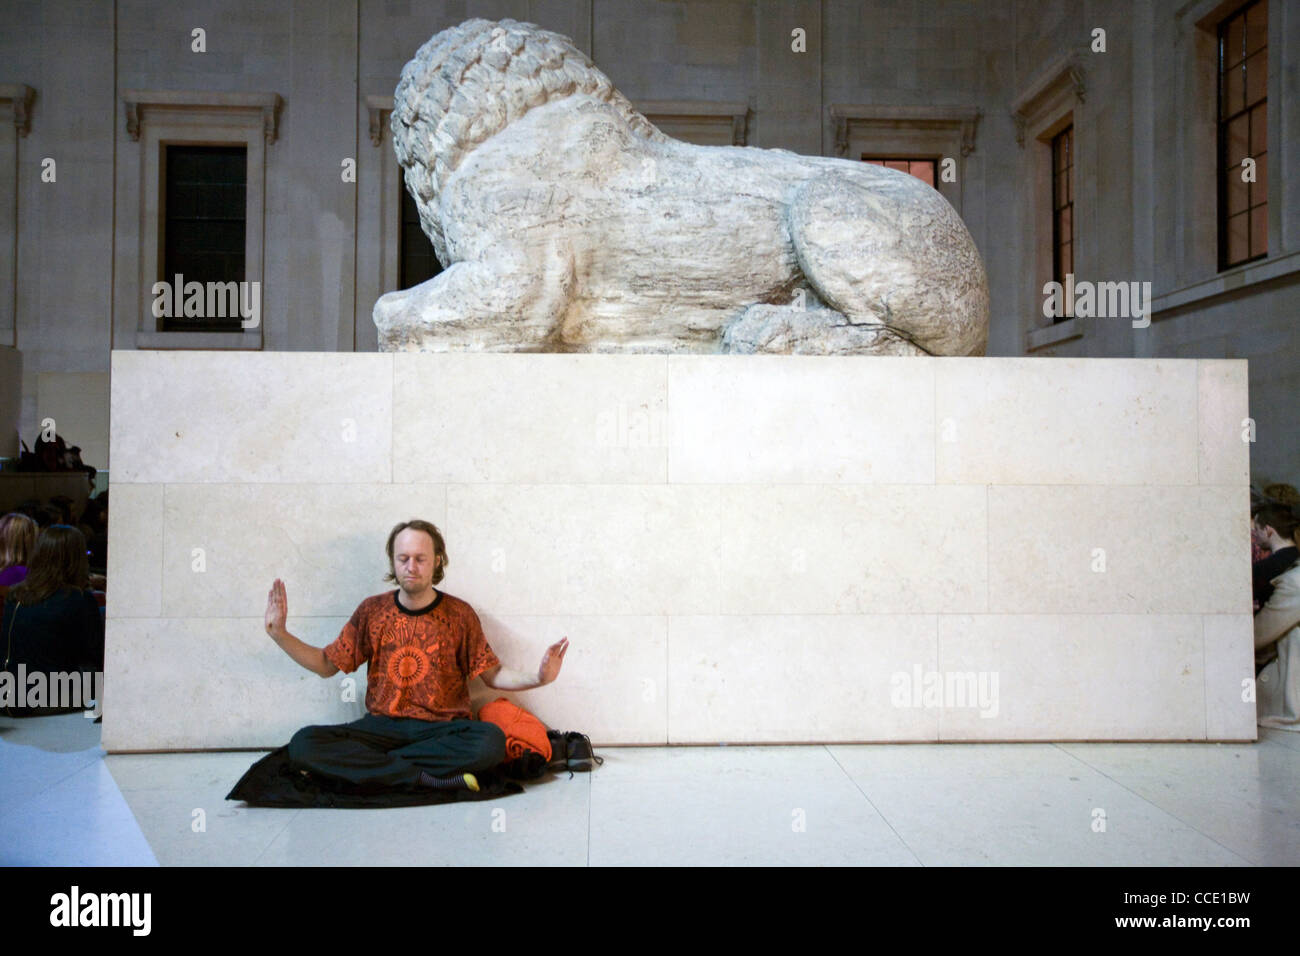 A man performs qi gong exercises - part of a meditation